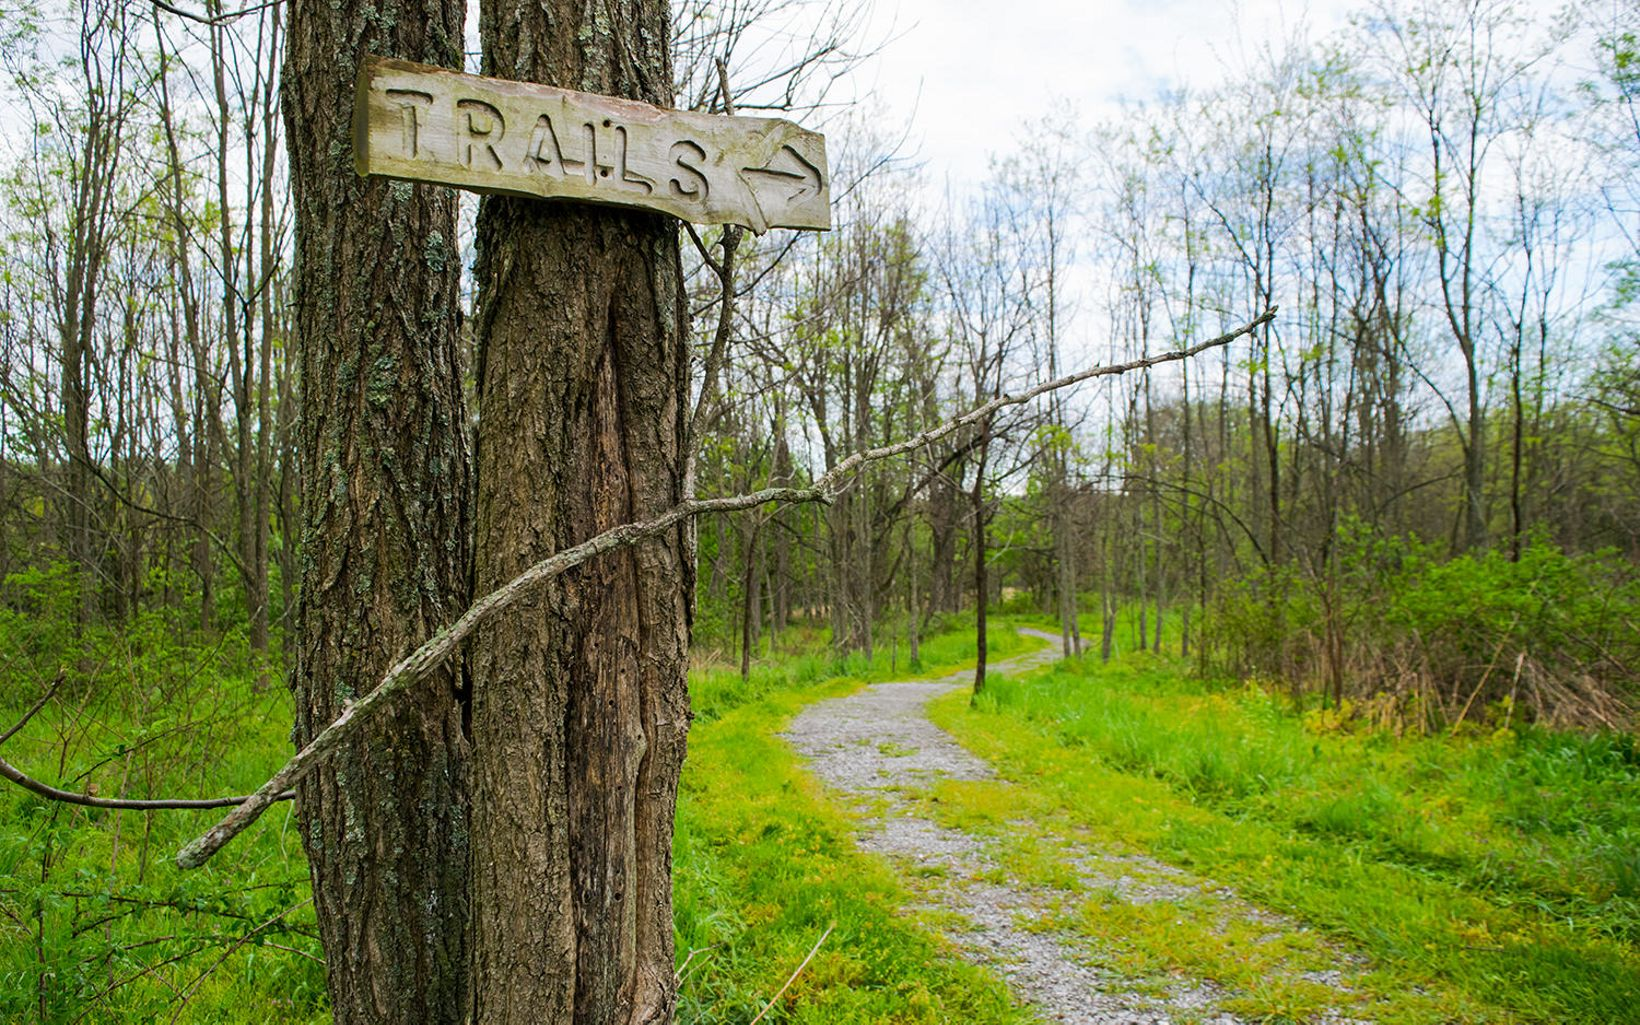 Green grass and trees on either side of a trail with a wooden carved sign in the foreground reading 'trails.'